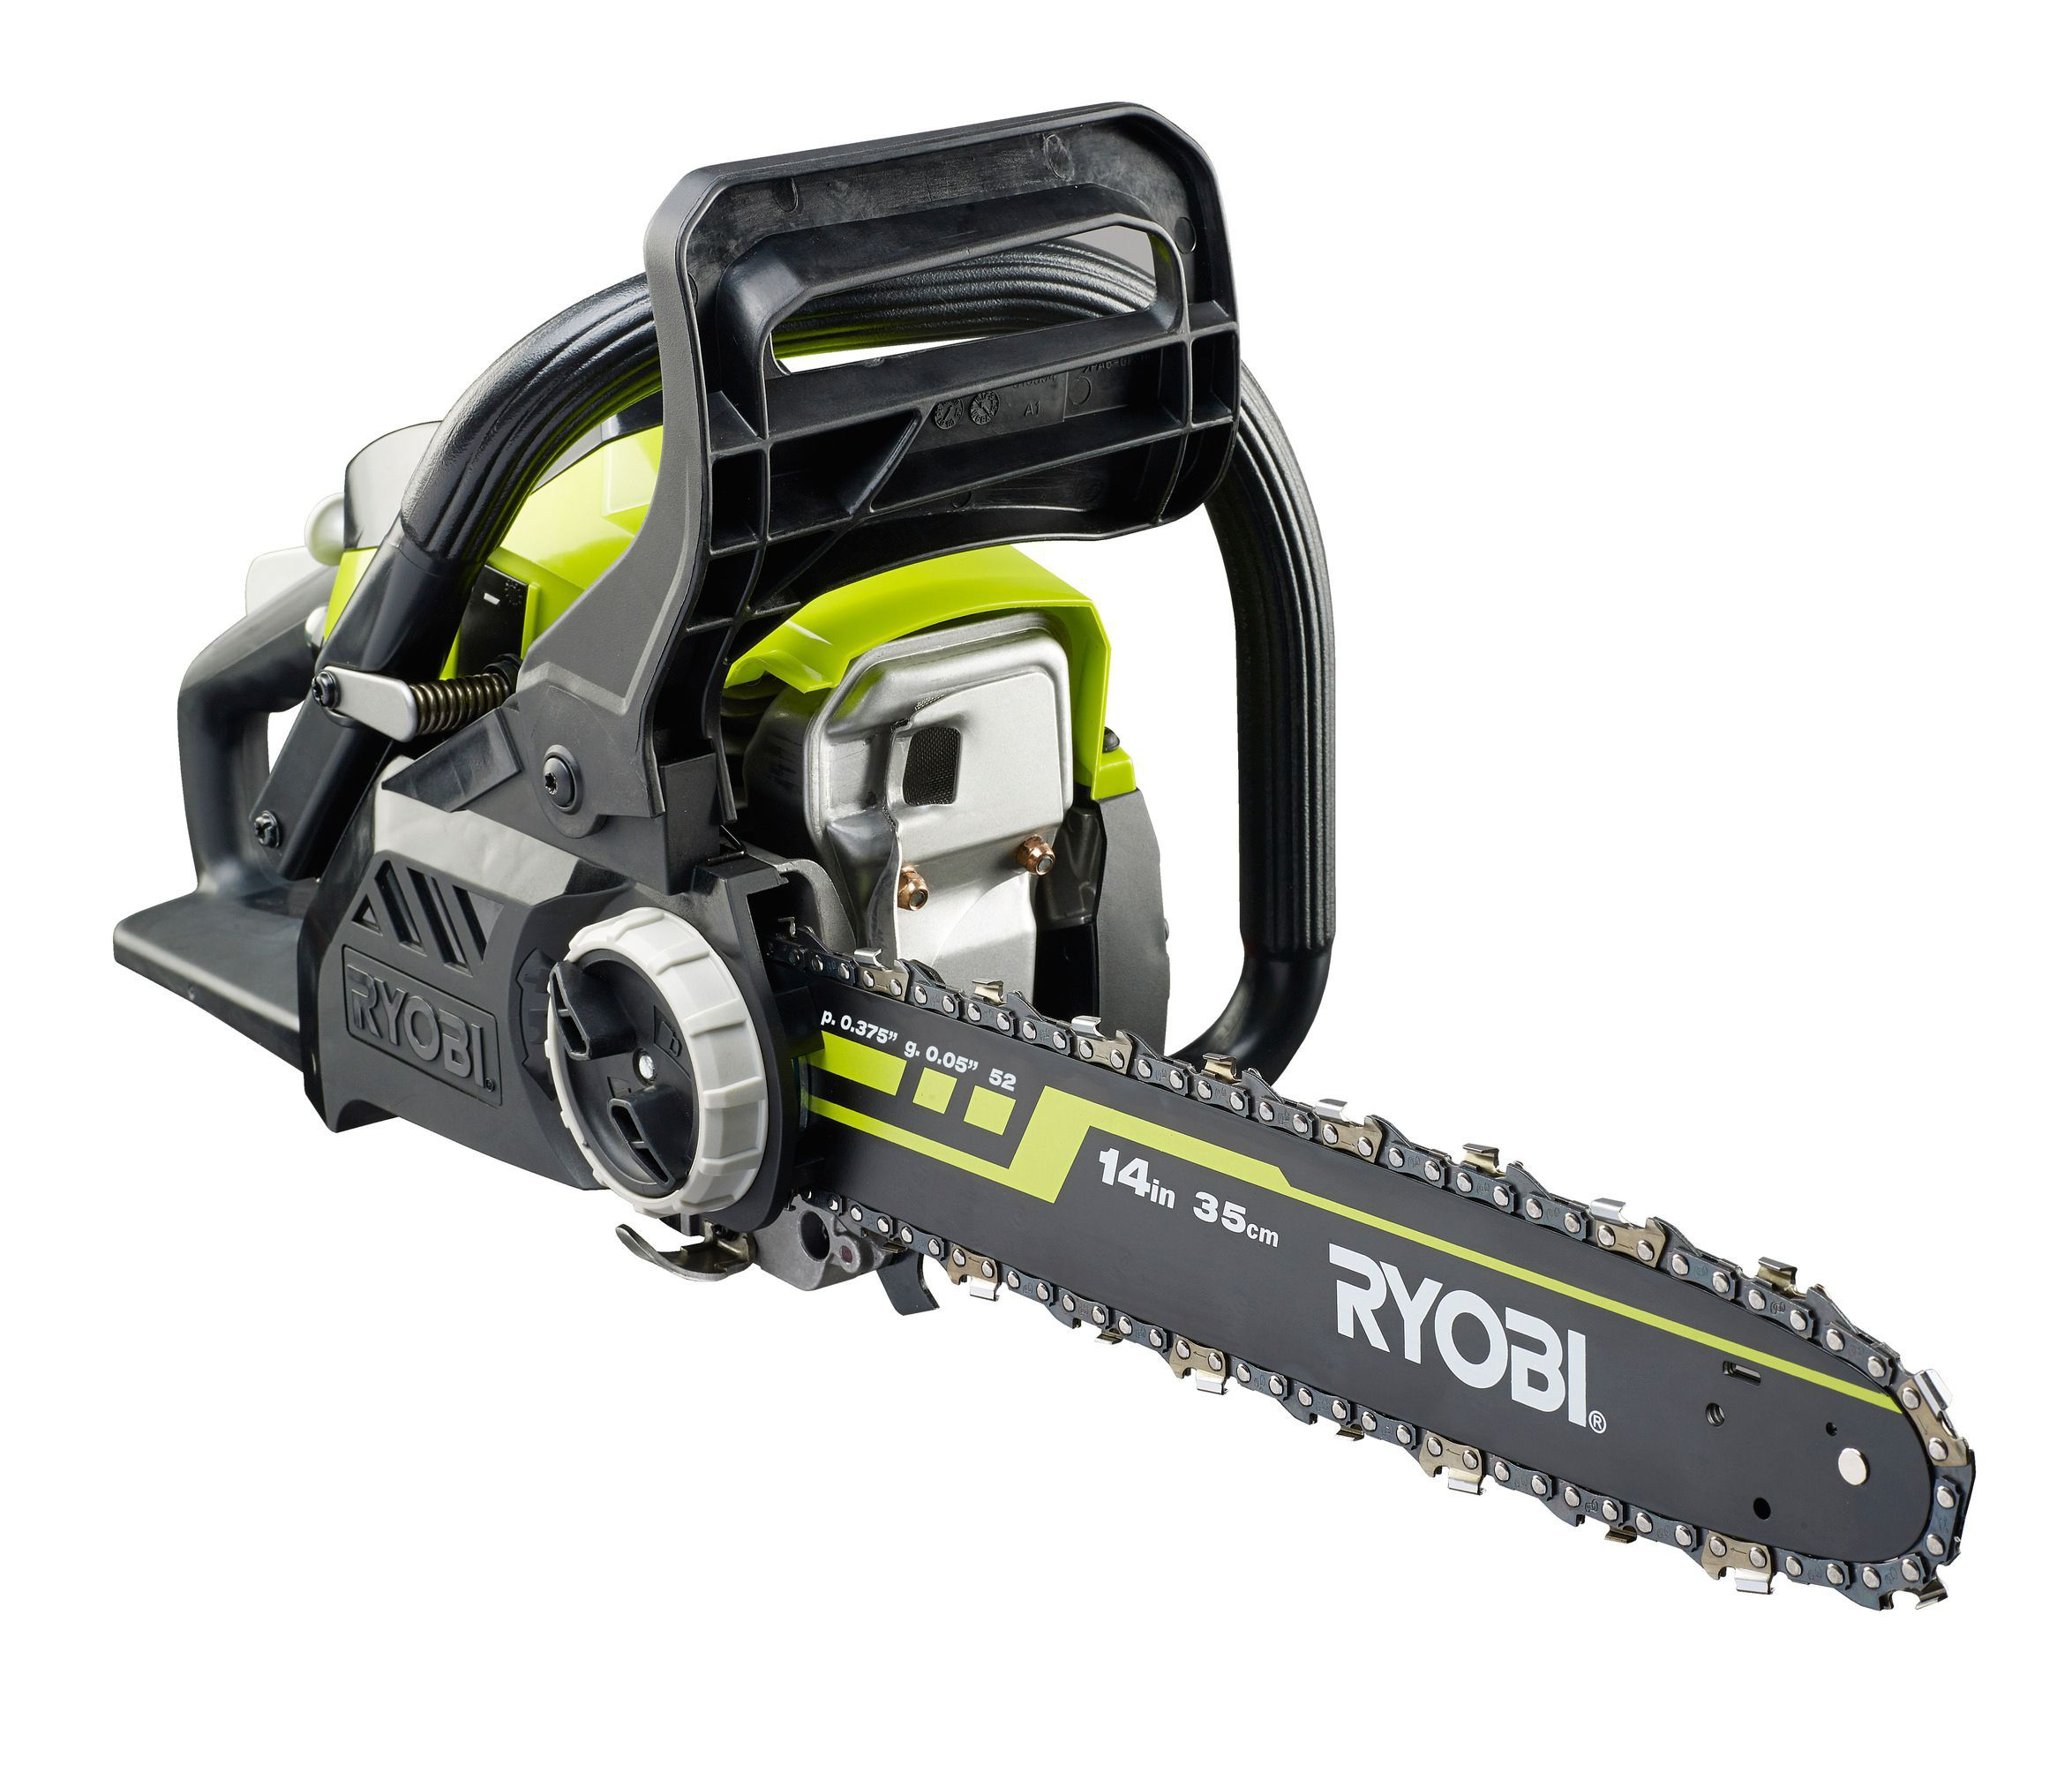 Ryobi rcs3835t 372 cc cordless petrol chainsaw departments diy ryobi rcs3835t 372 cc cordless petrol chainsaw departments diy at bq greentooth Images